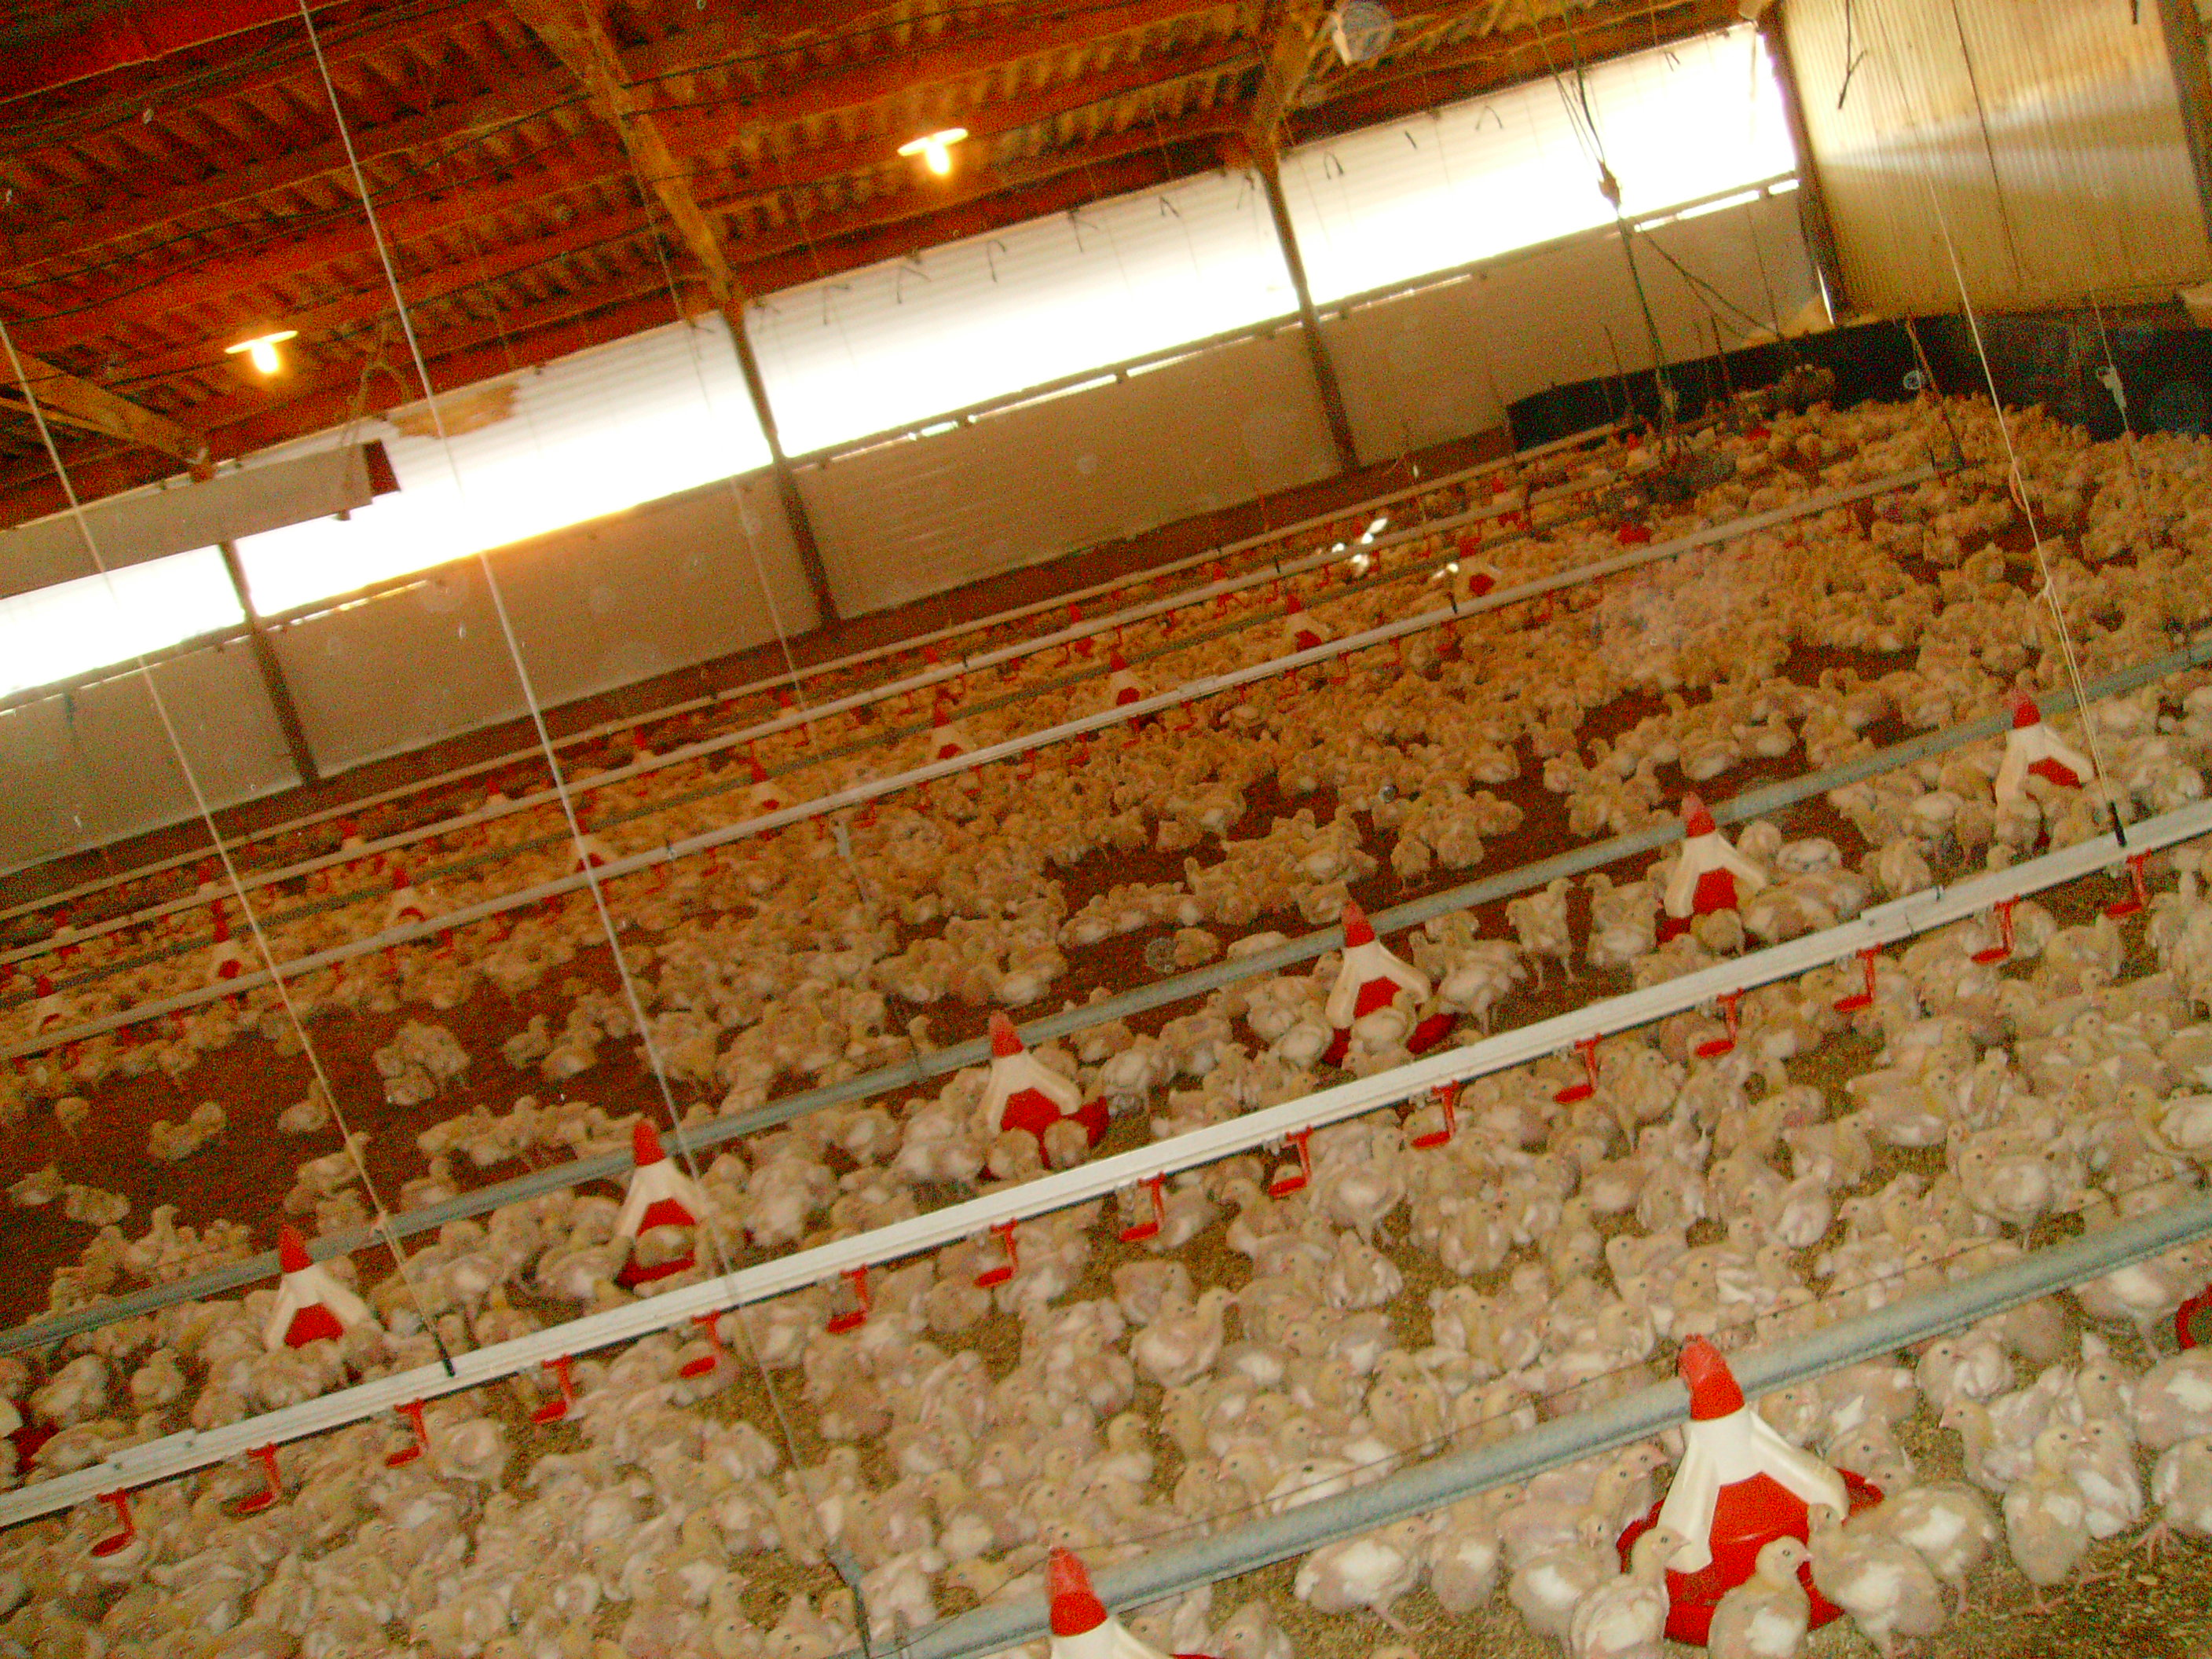 Factory Farming: Bad For The Animals, Humans, and The Environment